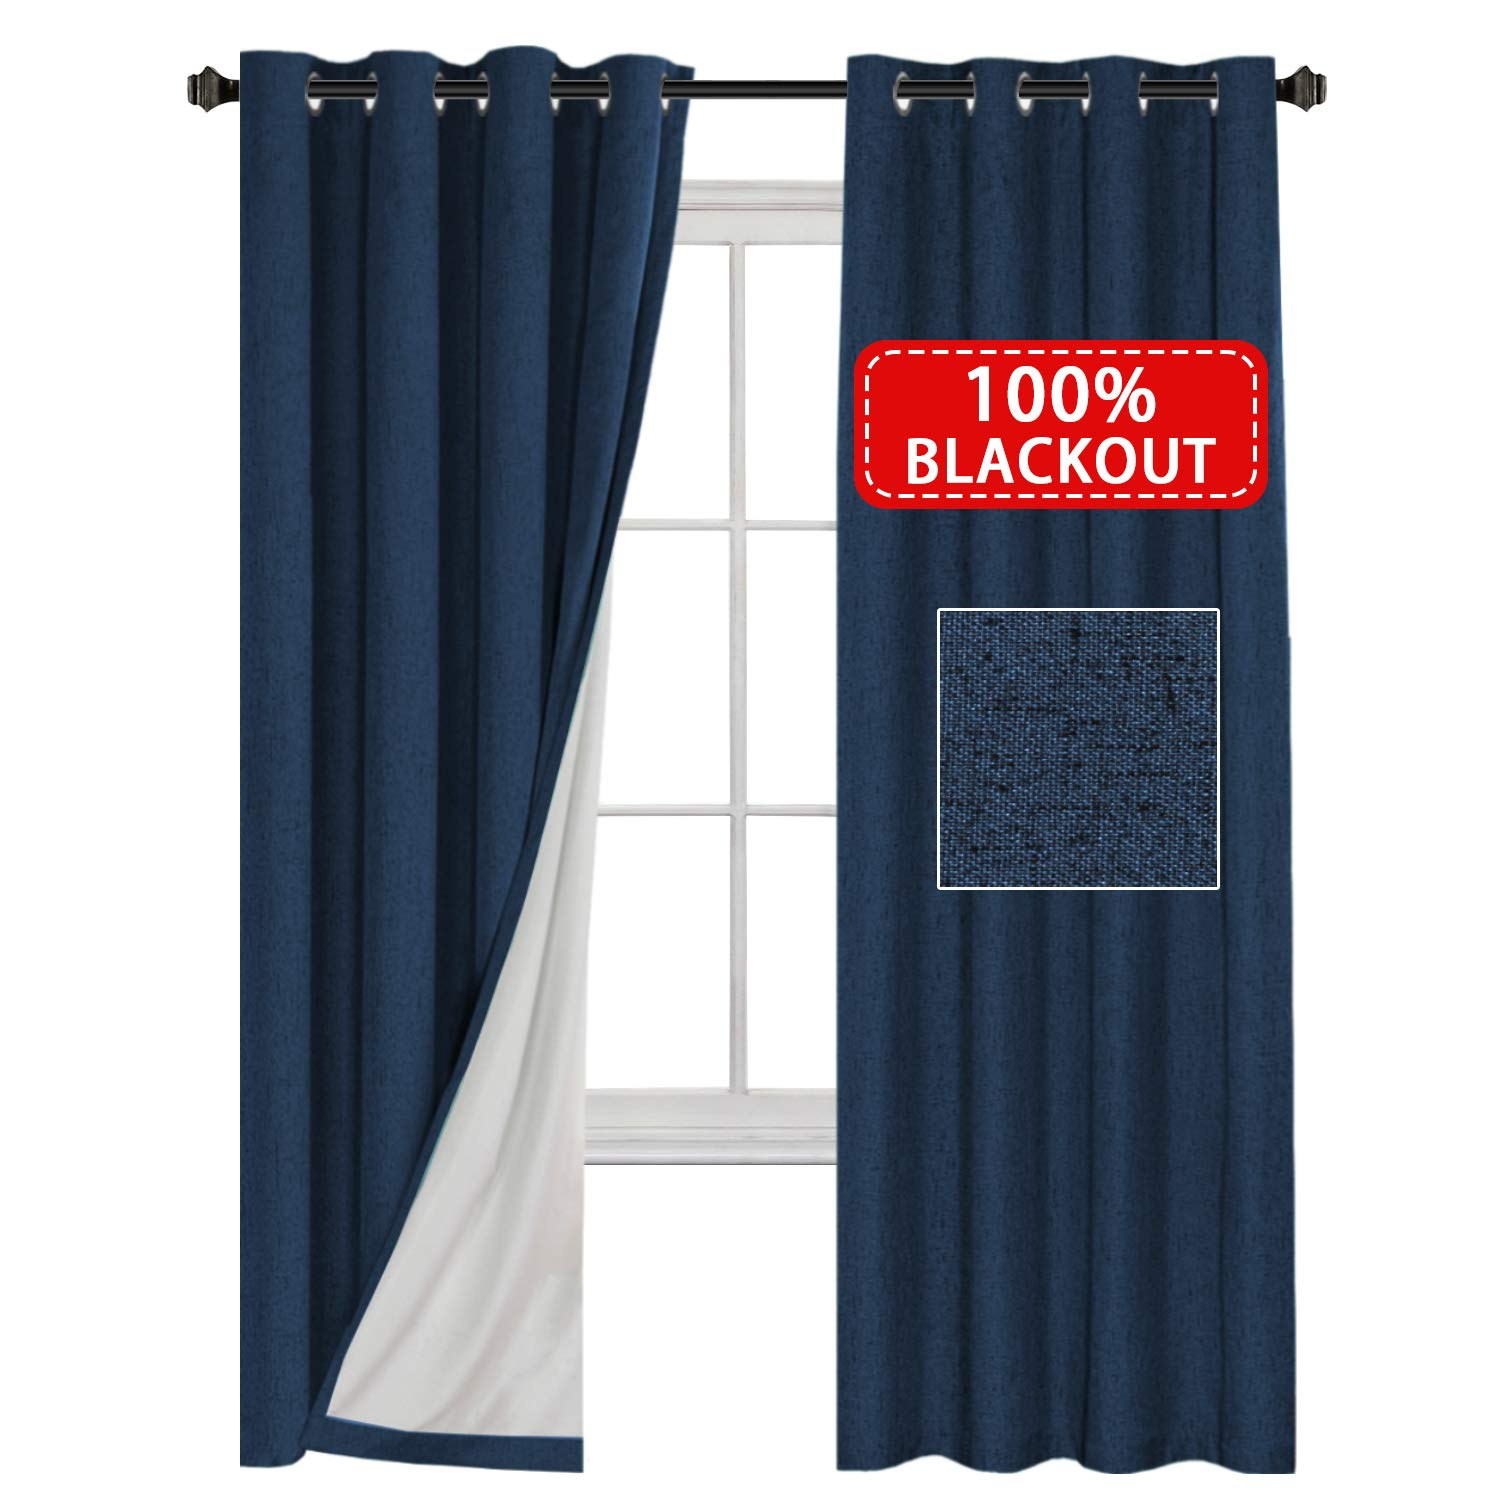 H.VERSAILTEX Thermal Insulated Waterproof 100% Blackout Faux Linen Room Darkening Curtains for Bedroom 52 inch Wide 63 inch Long Energy Efficient Window Curtain Panels (Grey, 2 Panels)